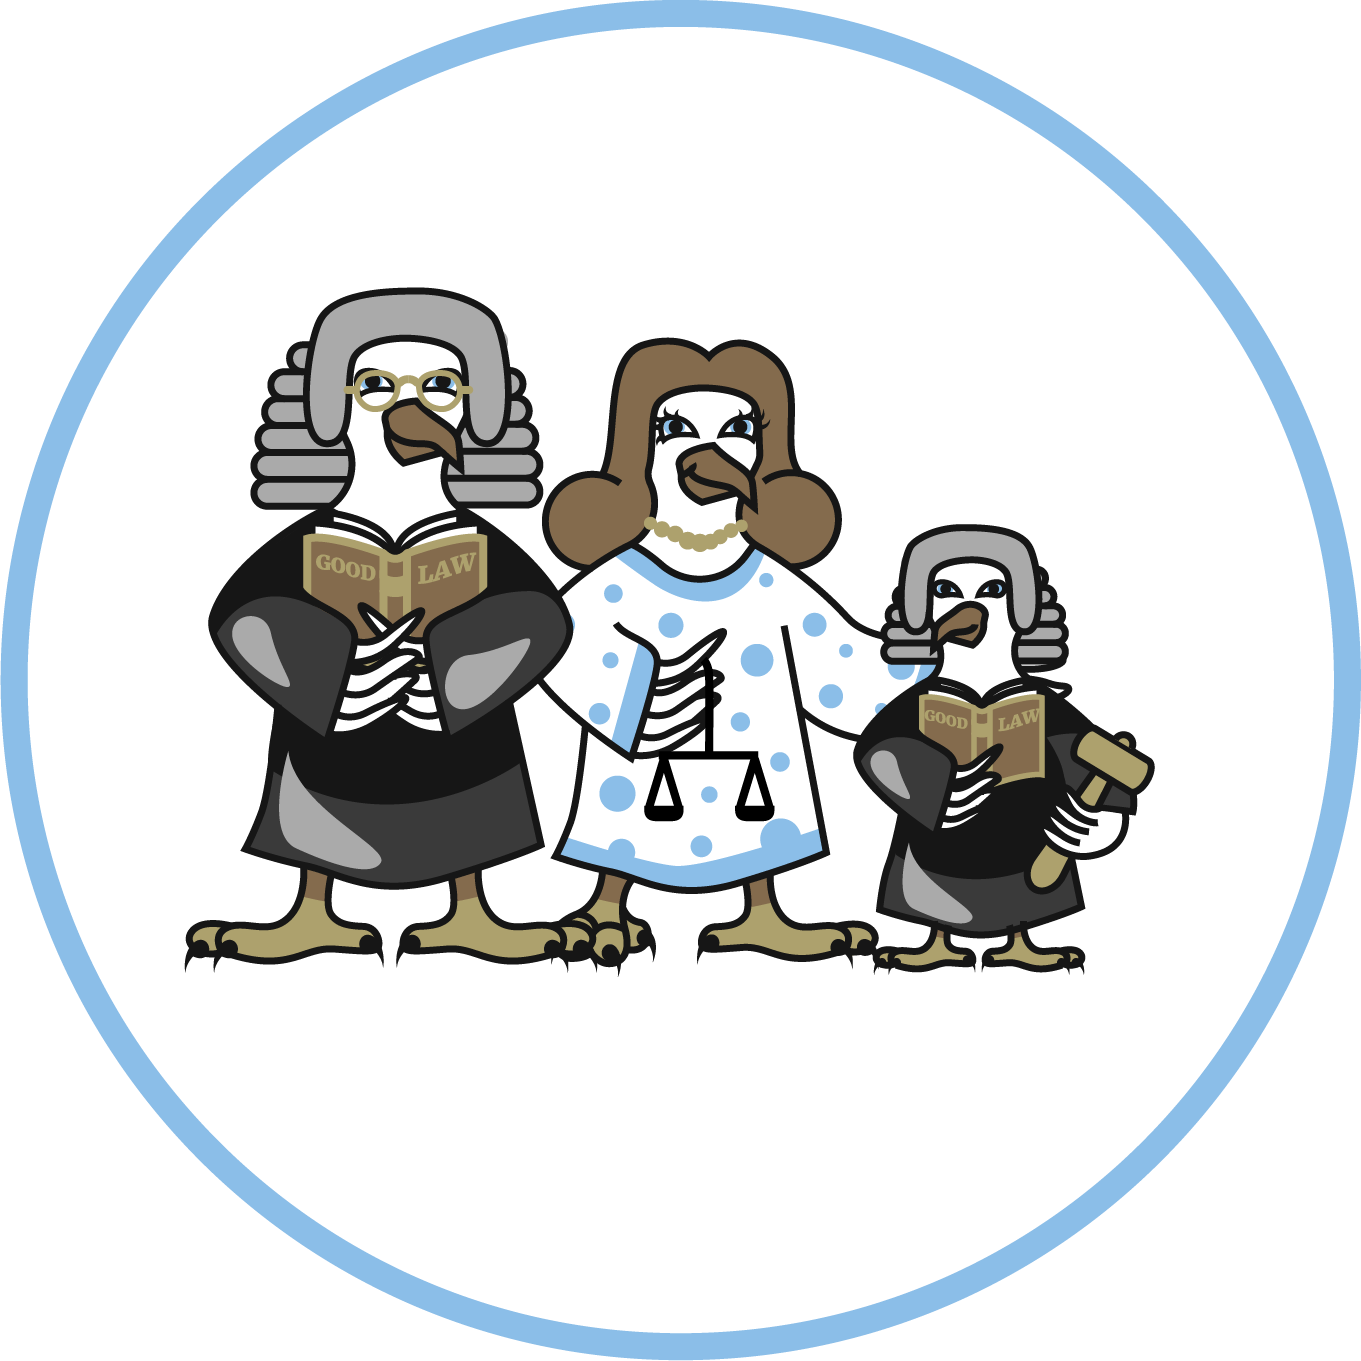 Evidence clipart unfamiliar. Familylegaleaglewithroundpng png family law